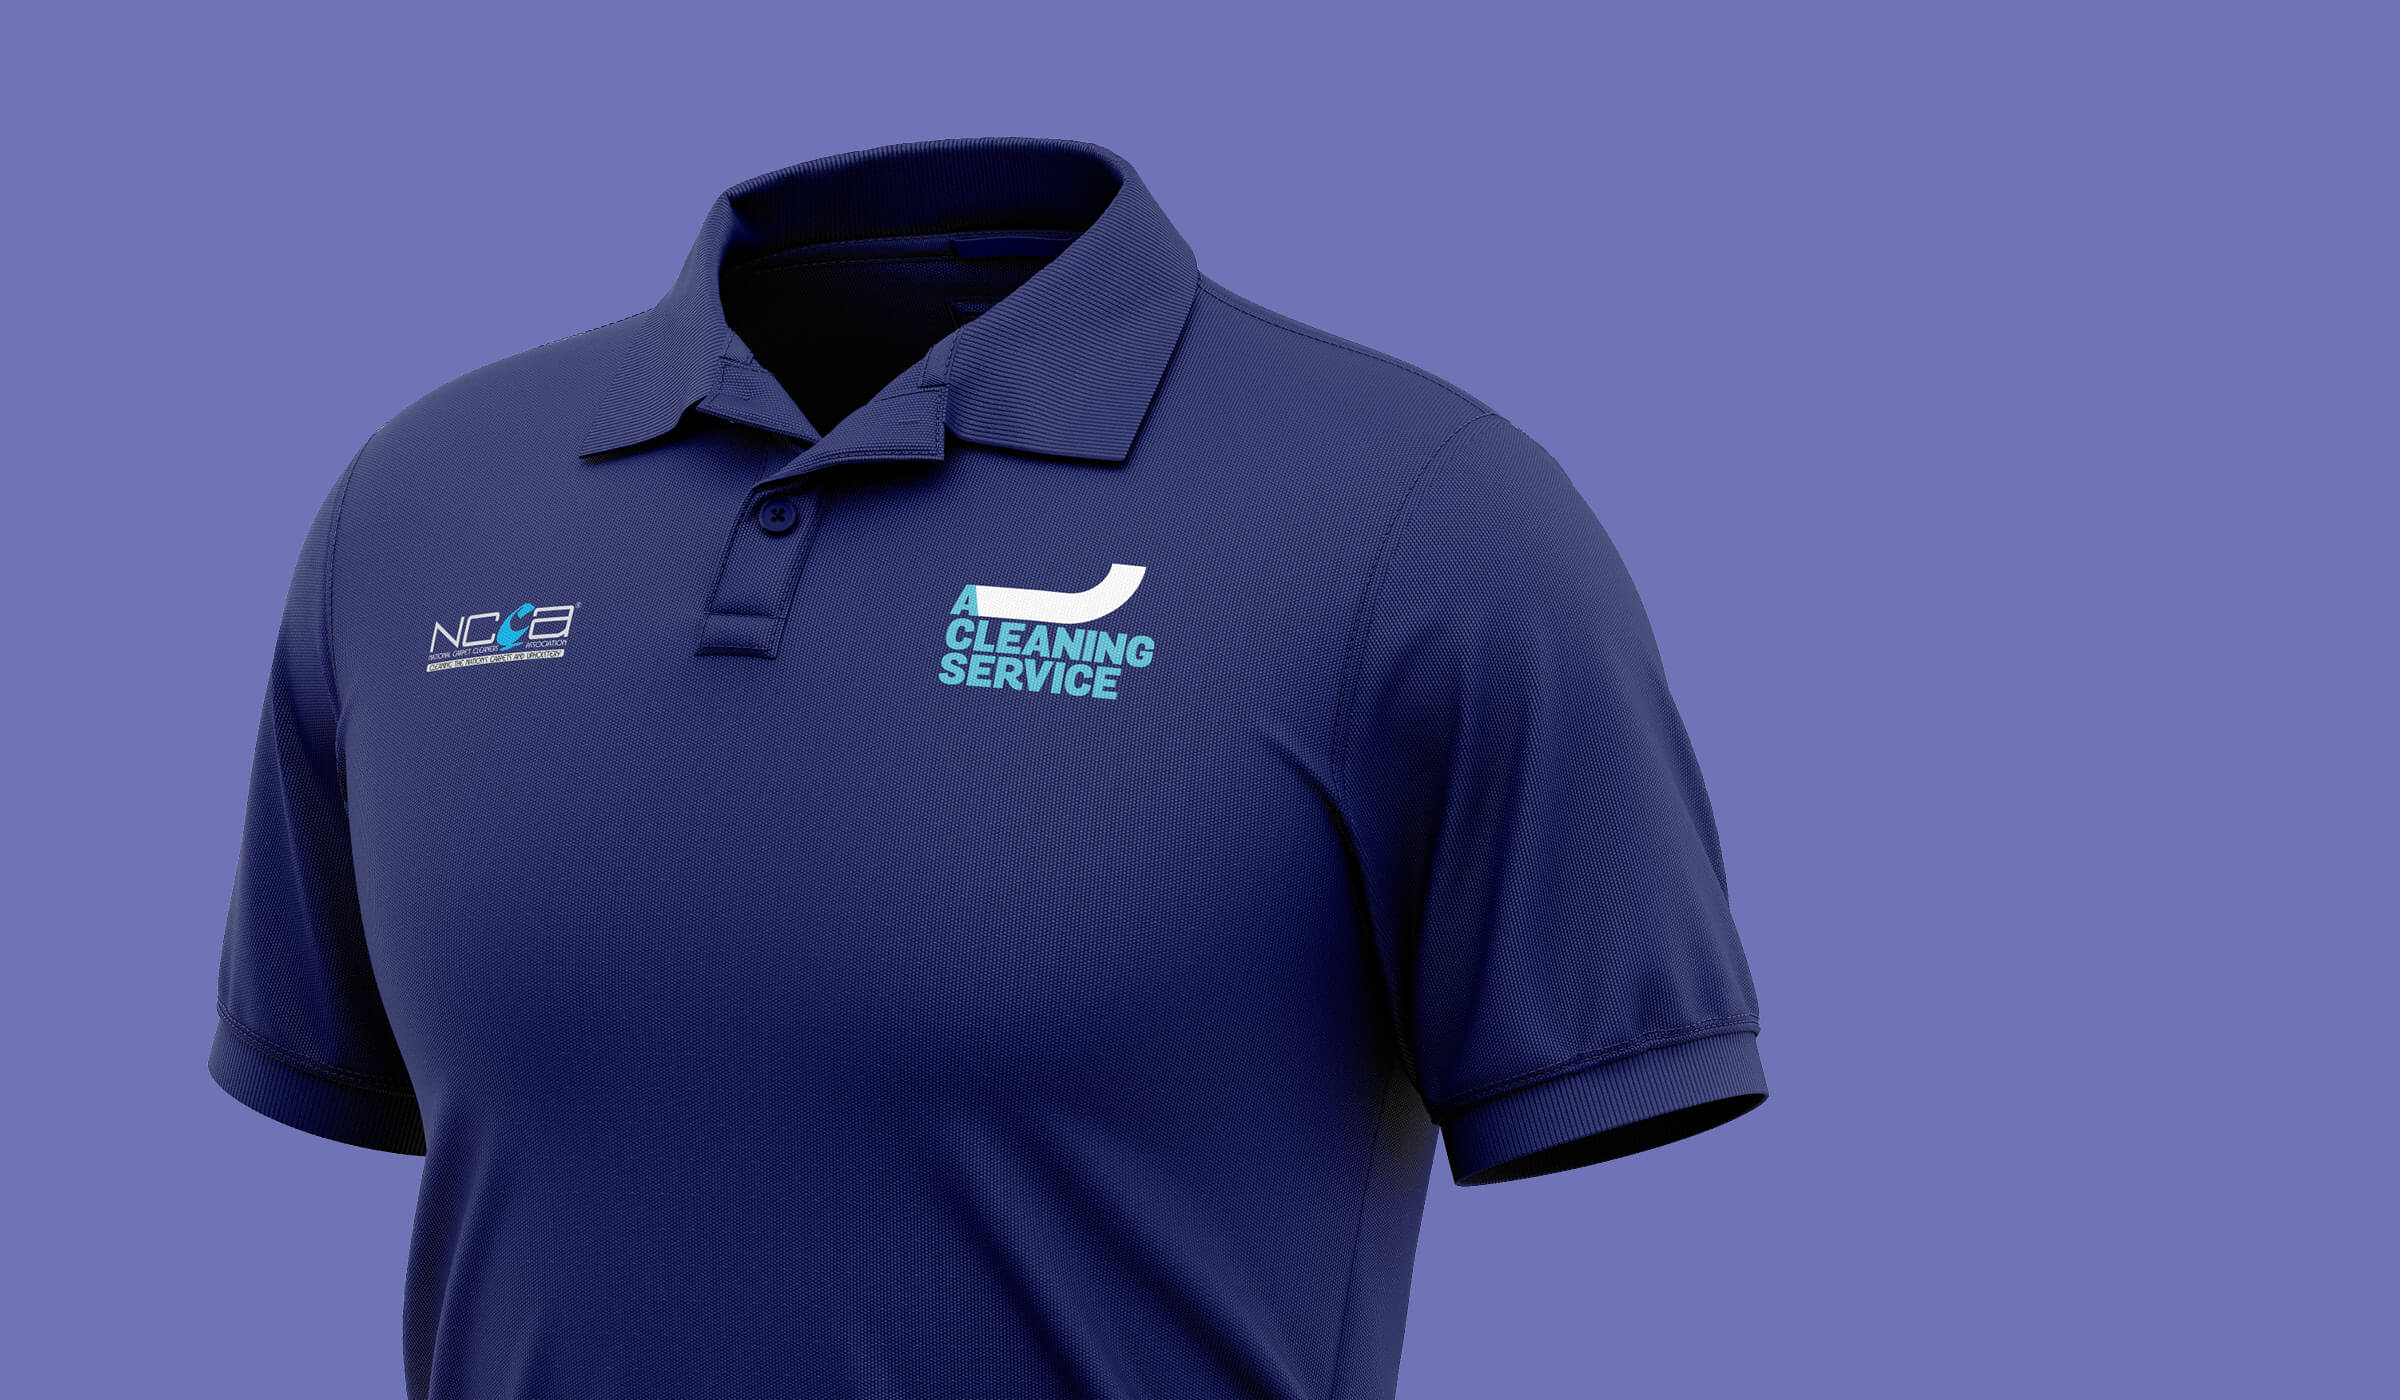 ACS branded workwear